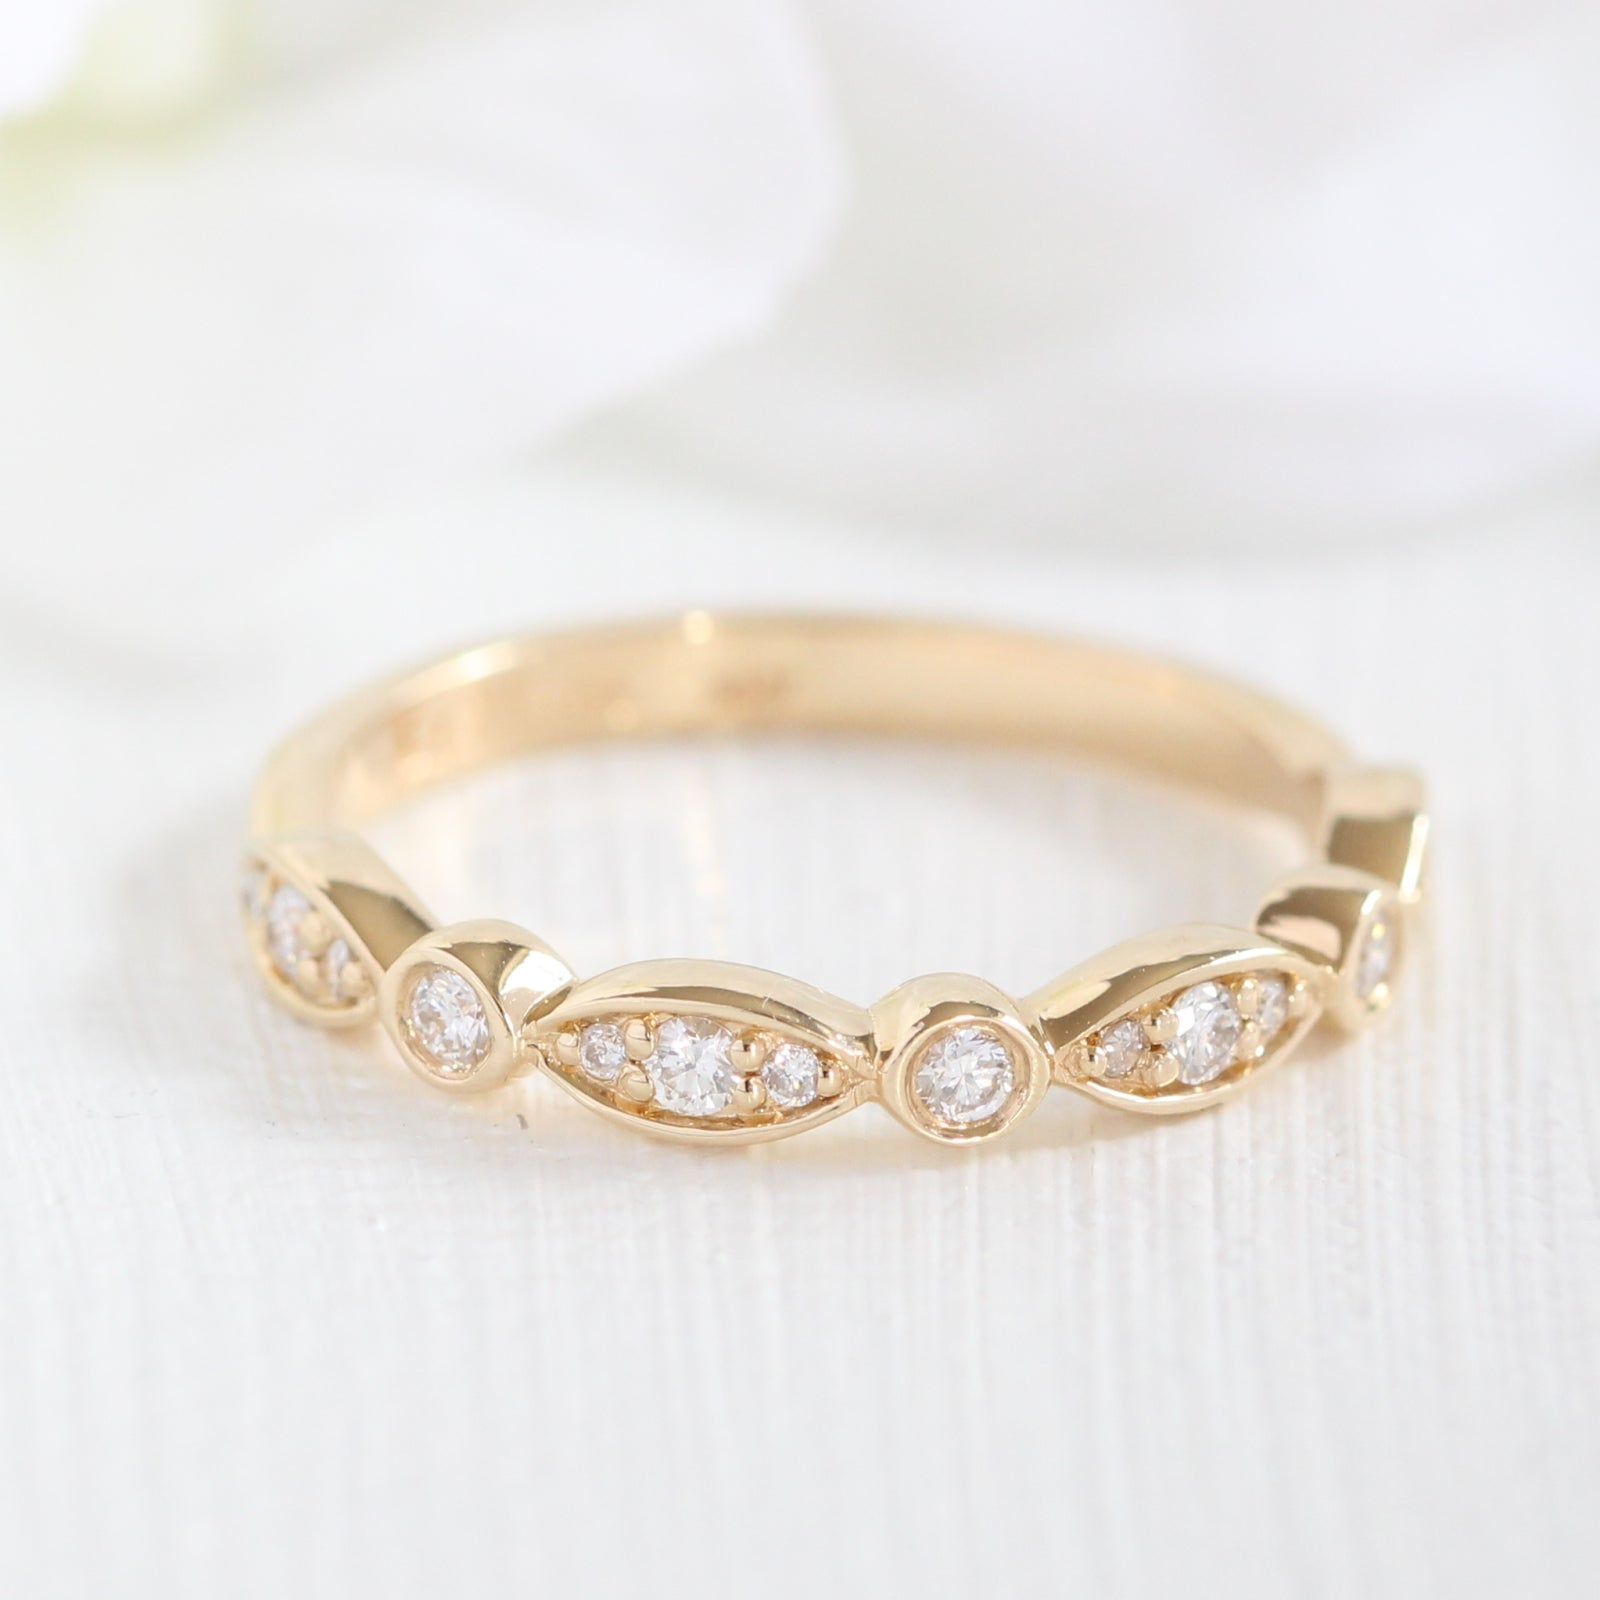 bands gent northern ring dk jewellers the ireland wedding bespoke k d band s scalloped rings